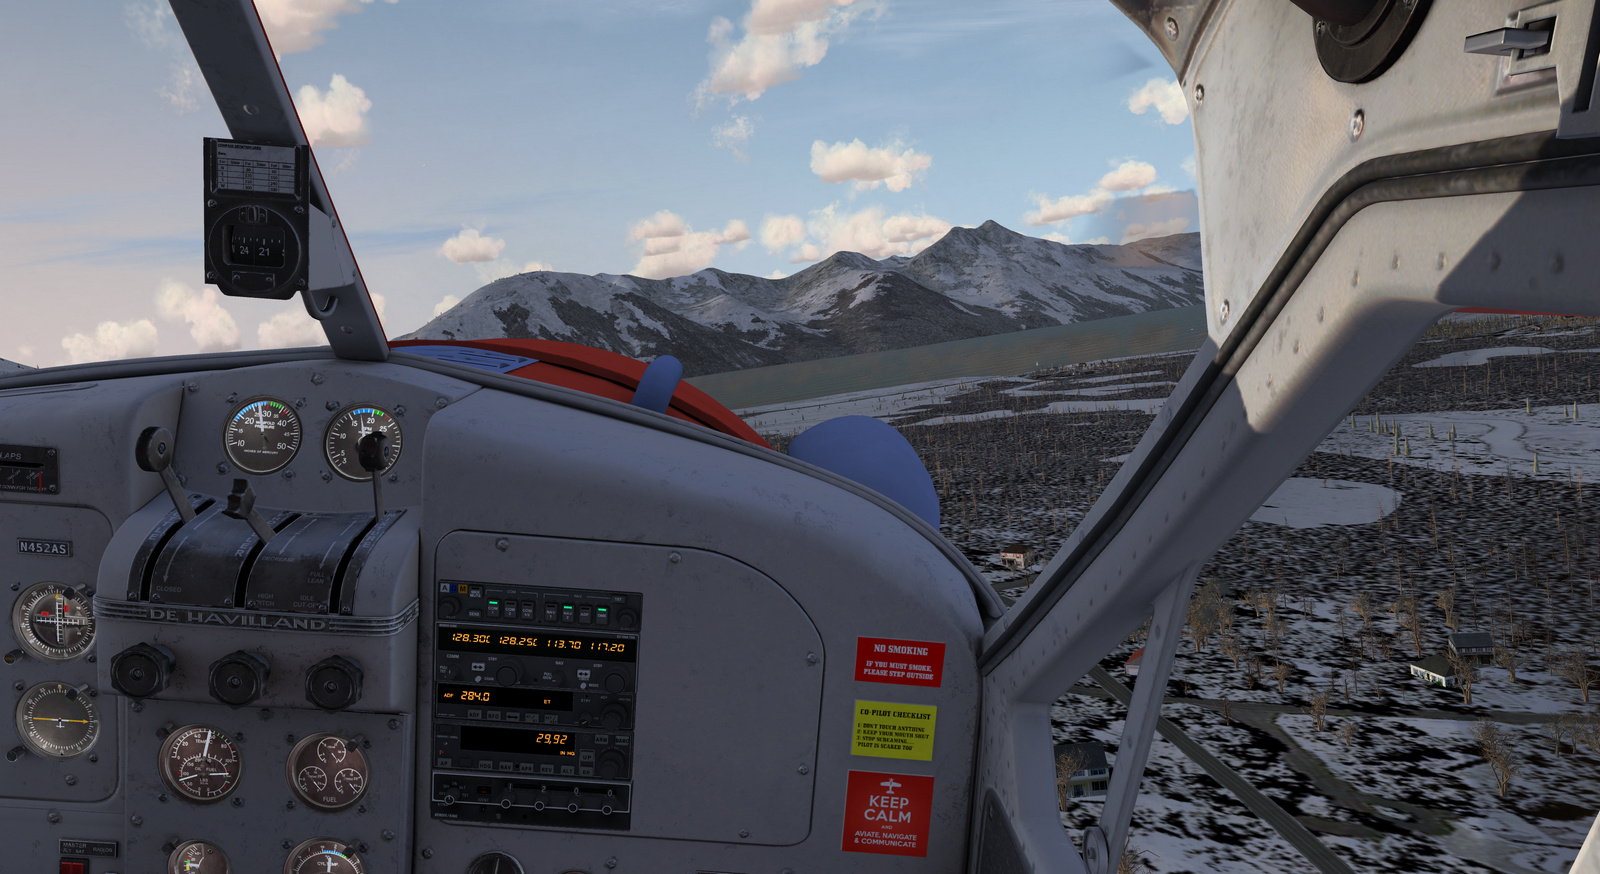 DHC-2 Beaver, Spirit of Alaska, cockpit, Screenshot 5/19